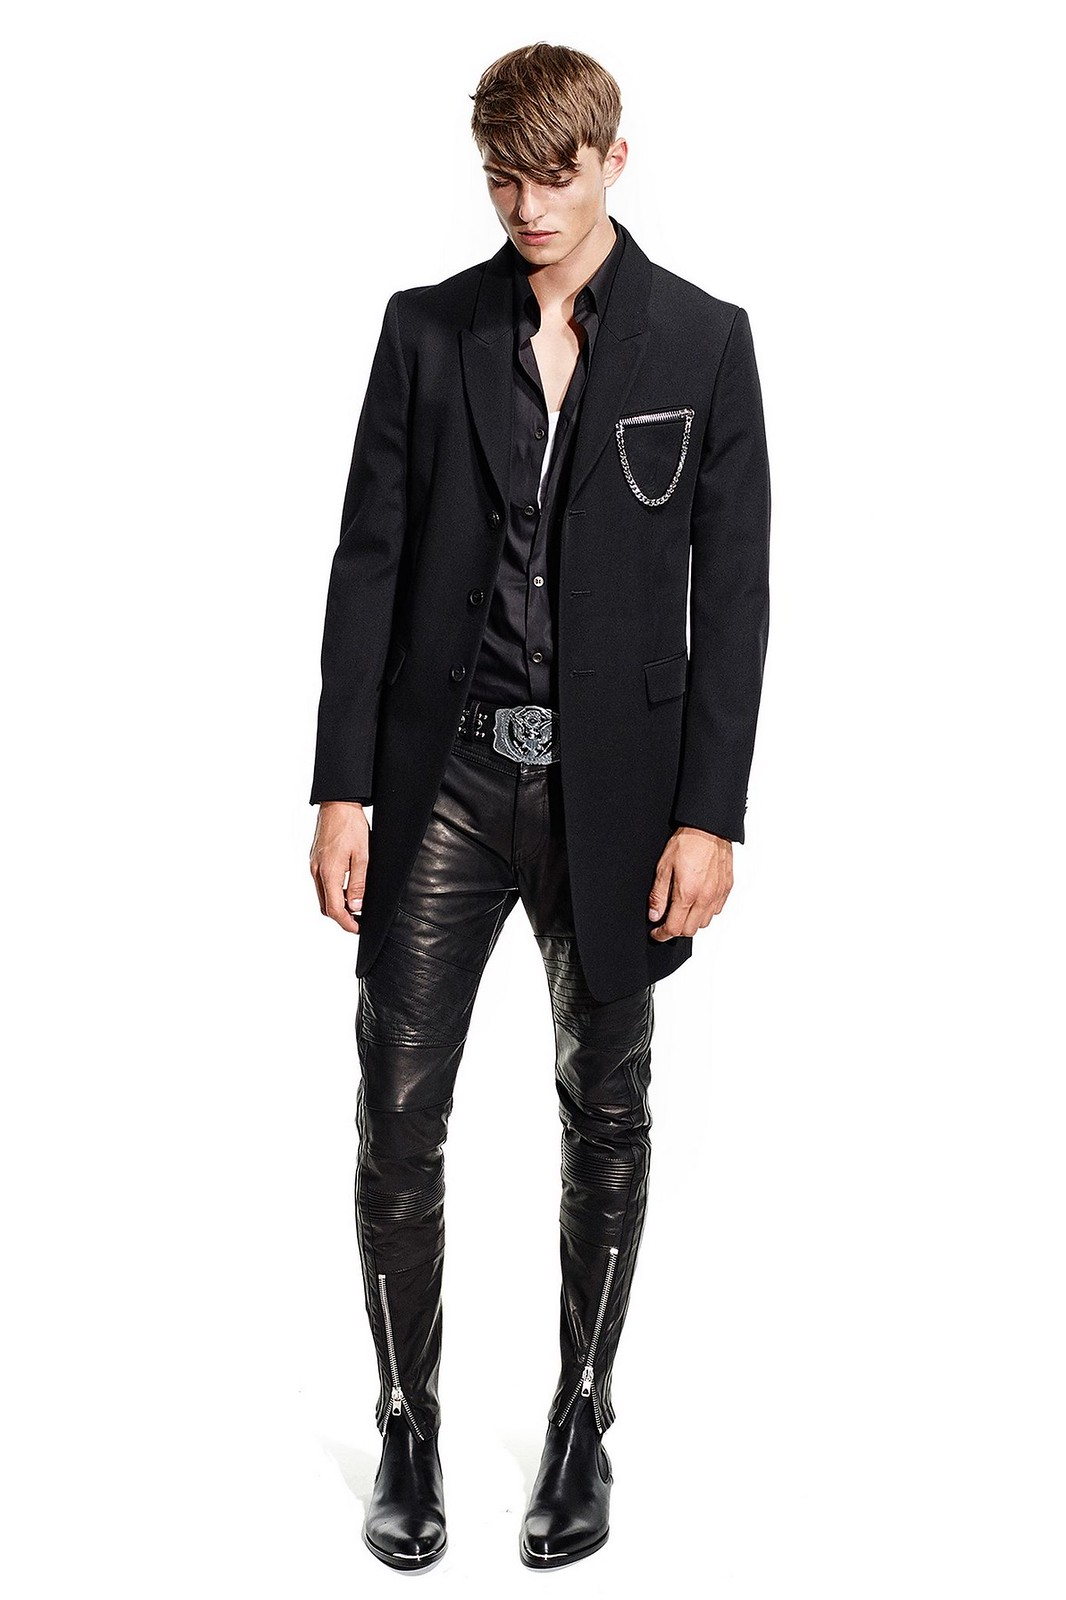 Guerrino Santulliana0010_AW14 DIESEL BLACK GOLD